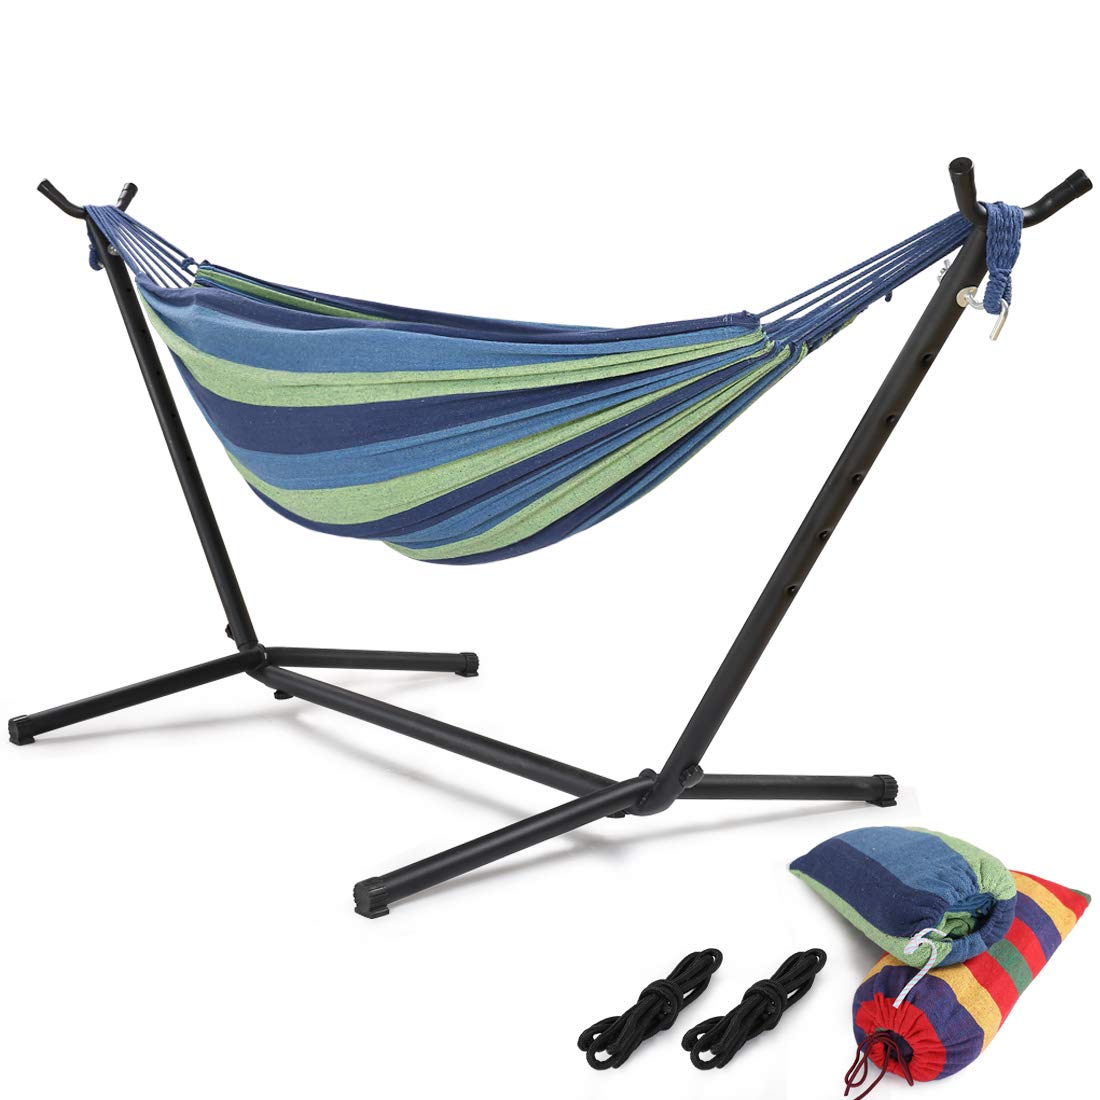 HONGJUN Double Hammock with Steel Stand - Space Saving 2 Person Adjustable and Portable Stand Hammocks,450 Pounds Capacity(Blue Stripe) by HONGJUN (Image #1)